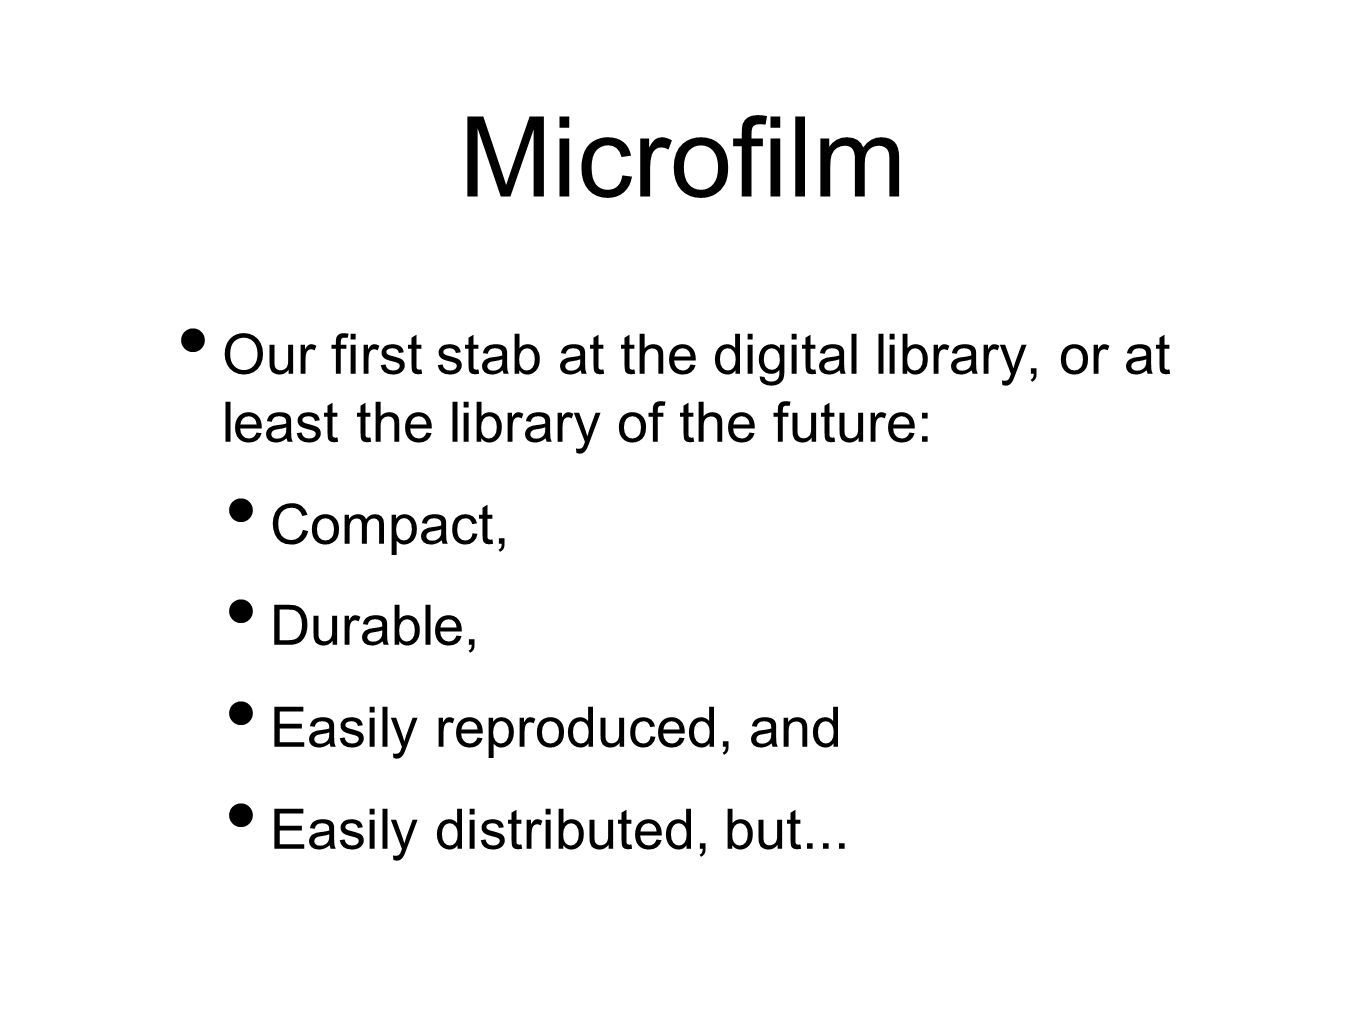 Microfilm Our first stab at the digital library, or at least the library of the future: Compact, Durable, Easily reproduced, and Easily distributed, b